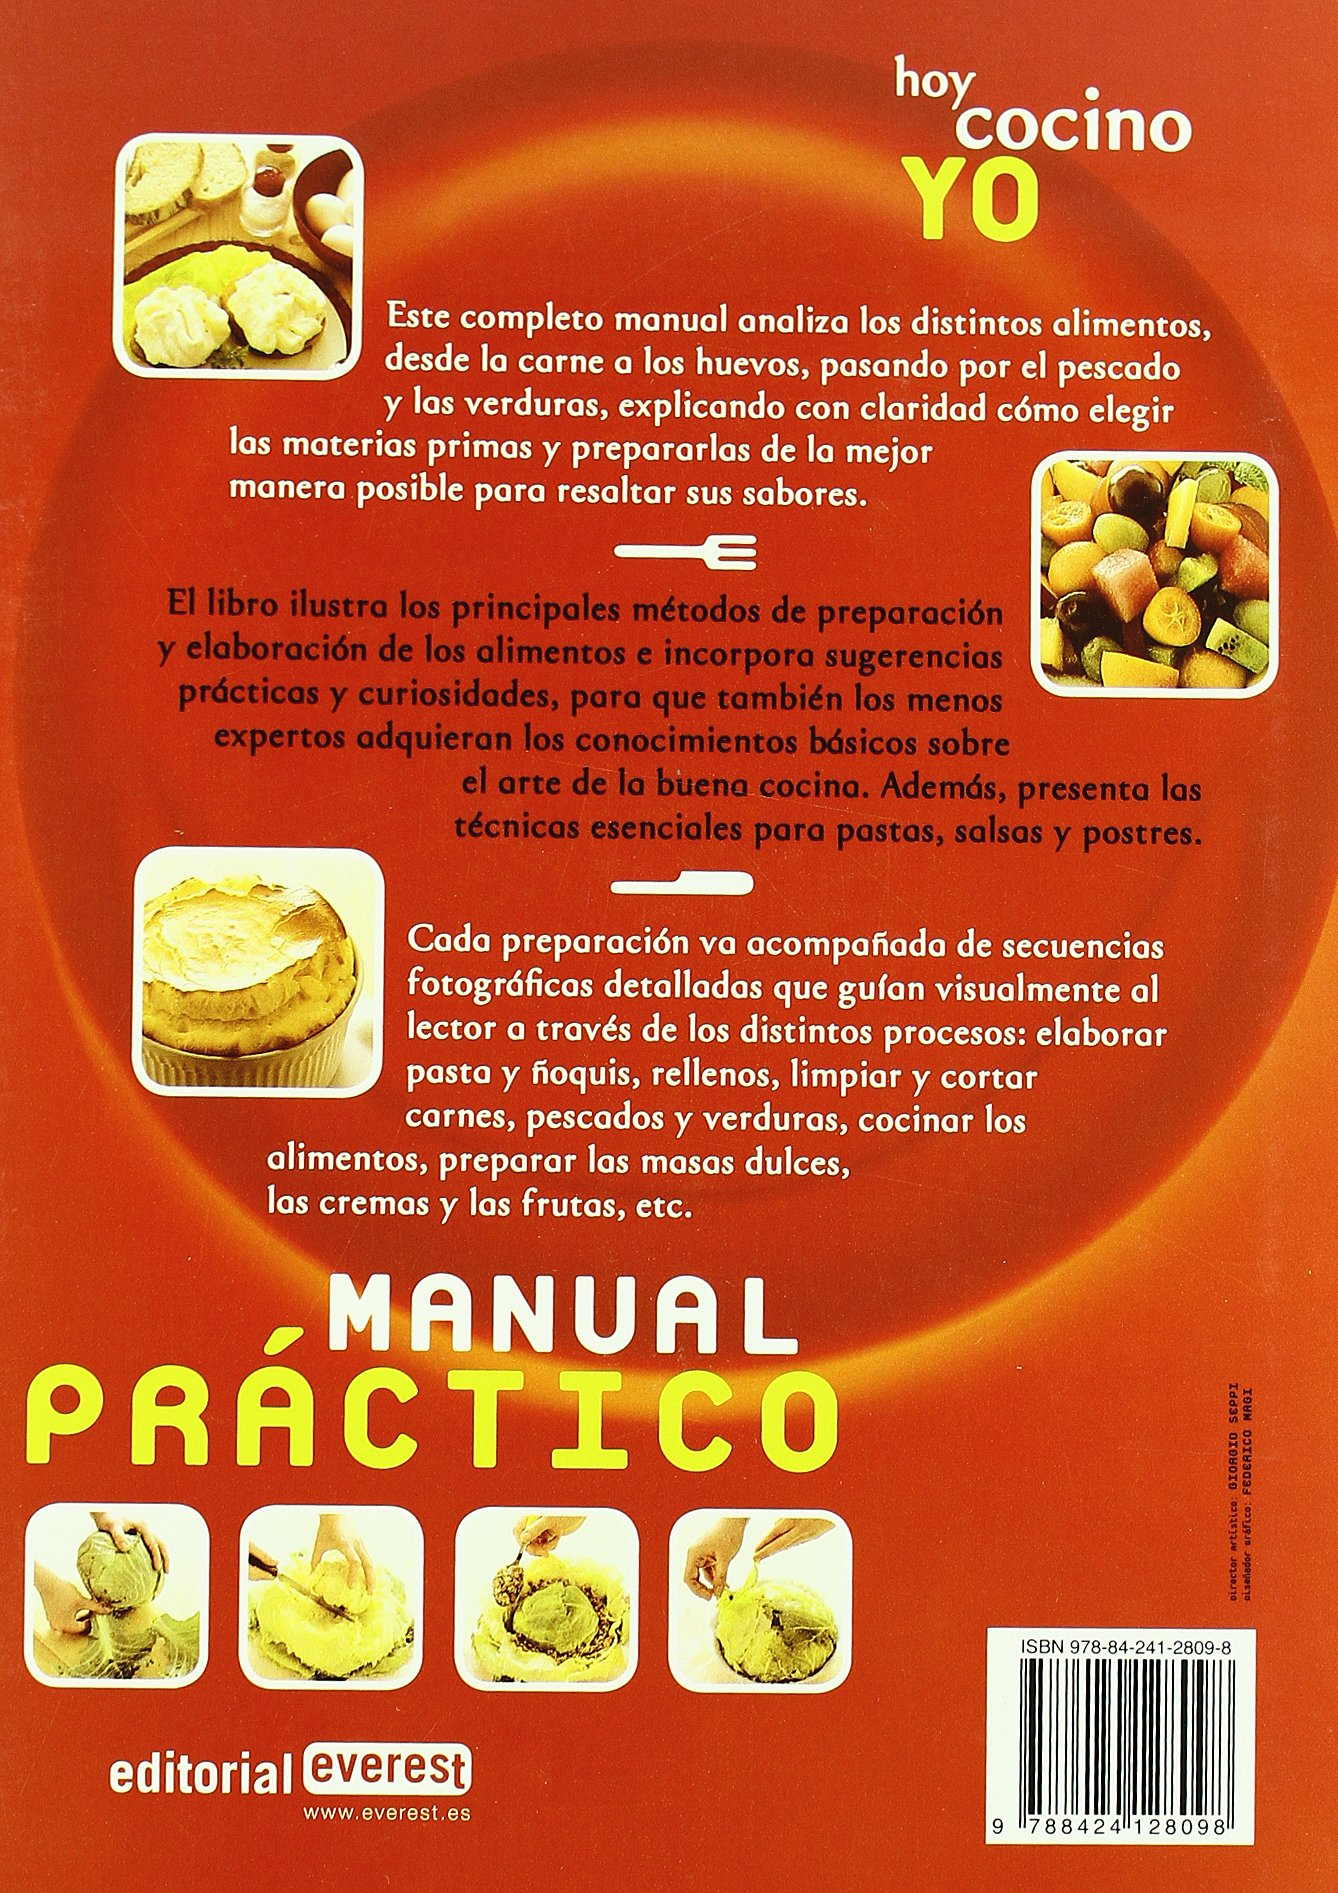 Hoy Cocino Yo, Manual Practico / Today I Cook, The Manual (Spanish Edition): Giuliana Bonomo, Pino Agostini, Fredi Marcarini: 9788424128098: Amazon.com: ...